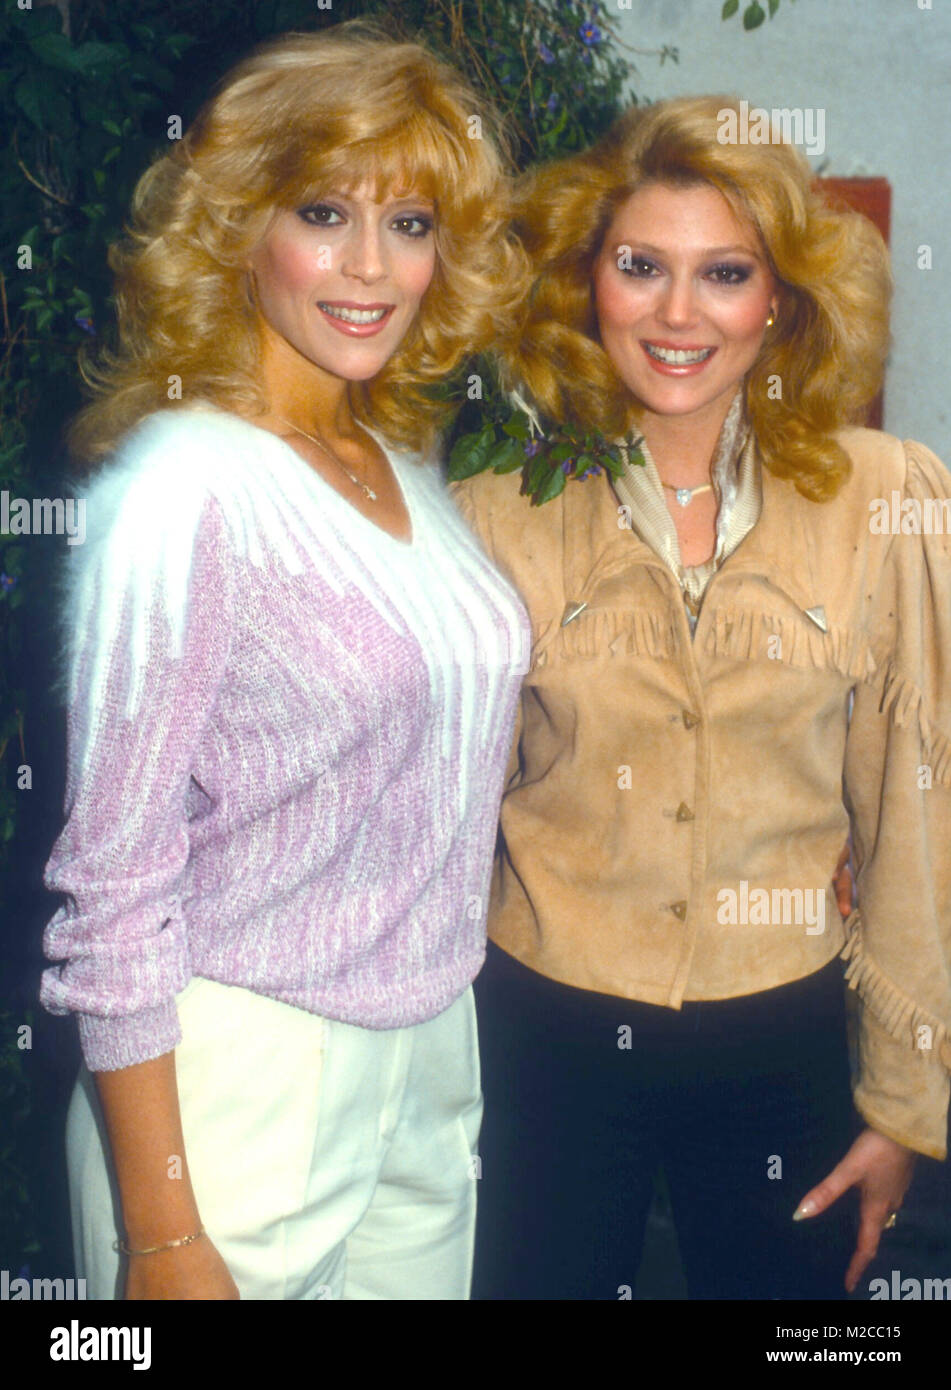 audrey landers now